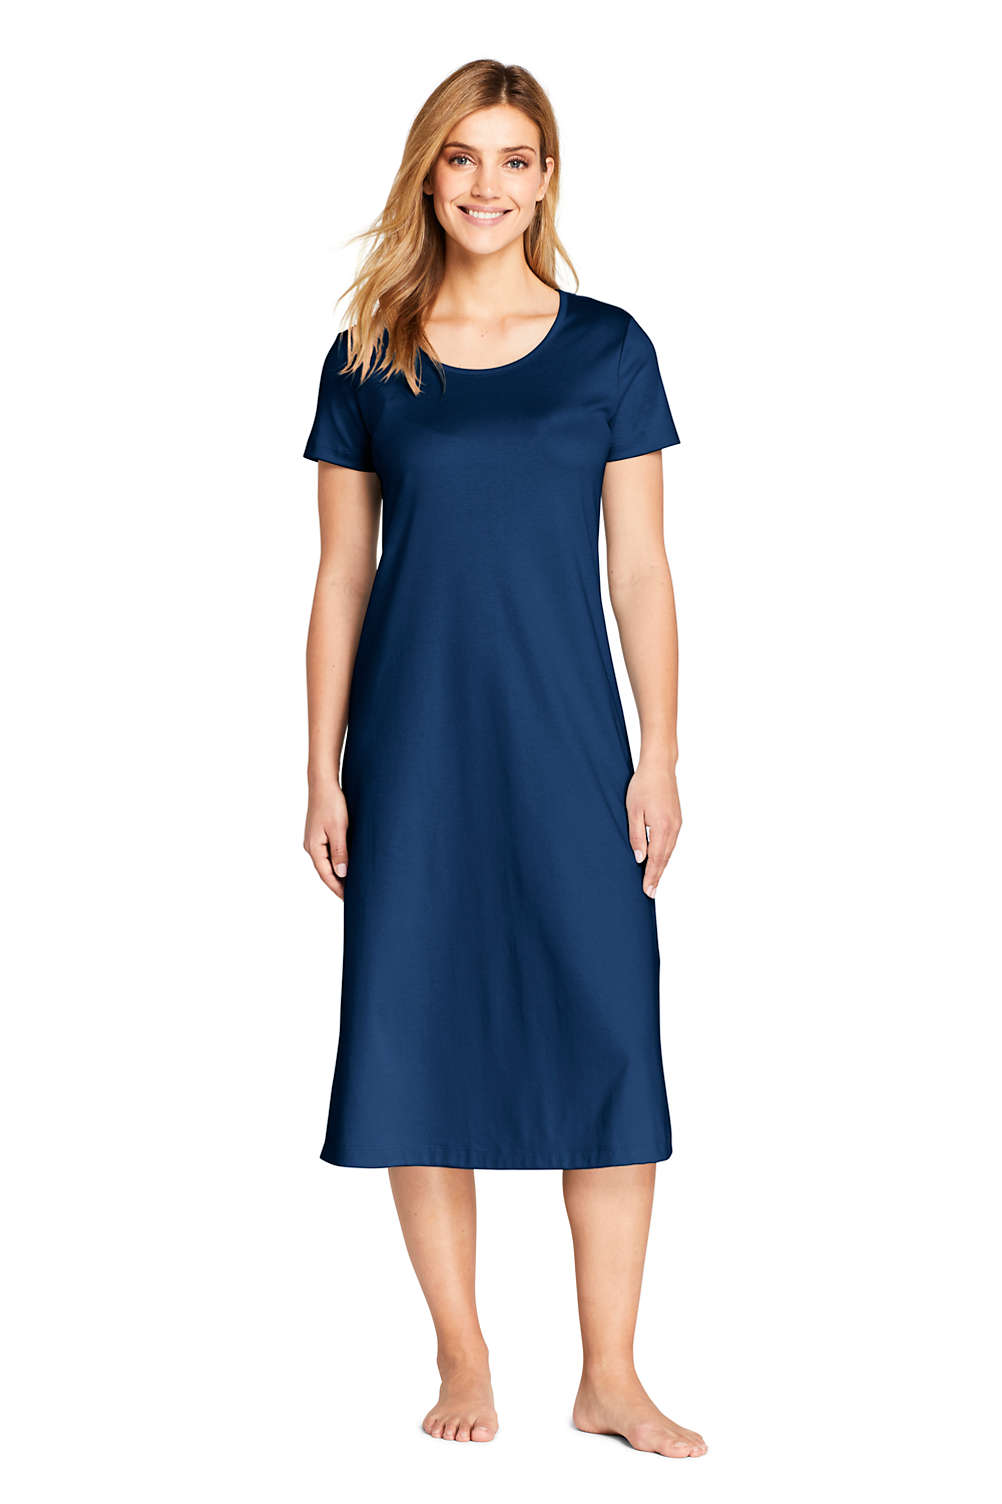 3b8c902d1 Women's Midcalf Supima Cotton Nightgown from Lands' End